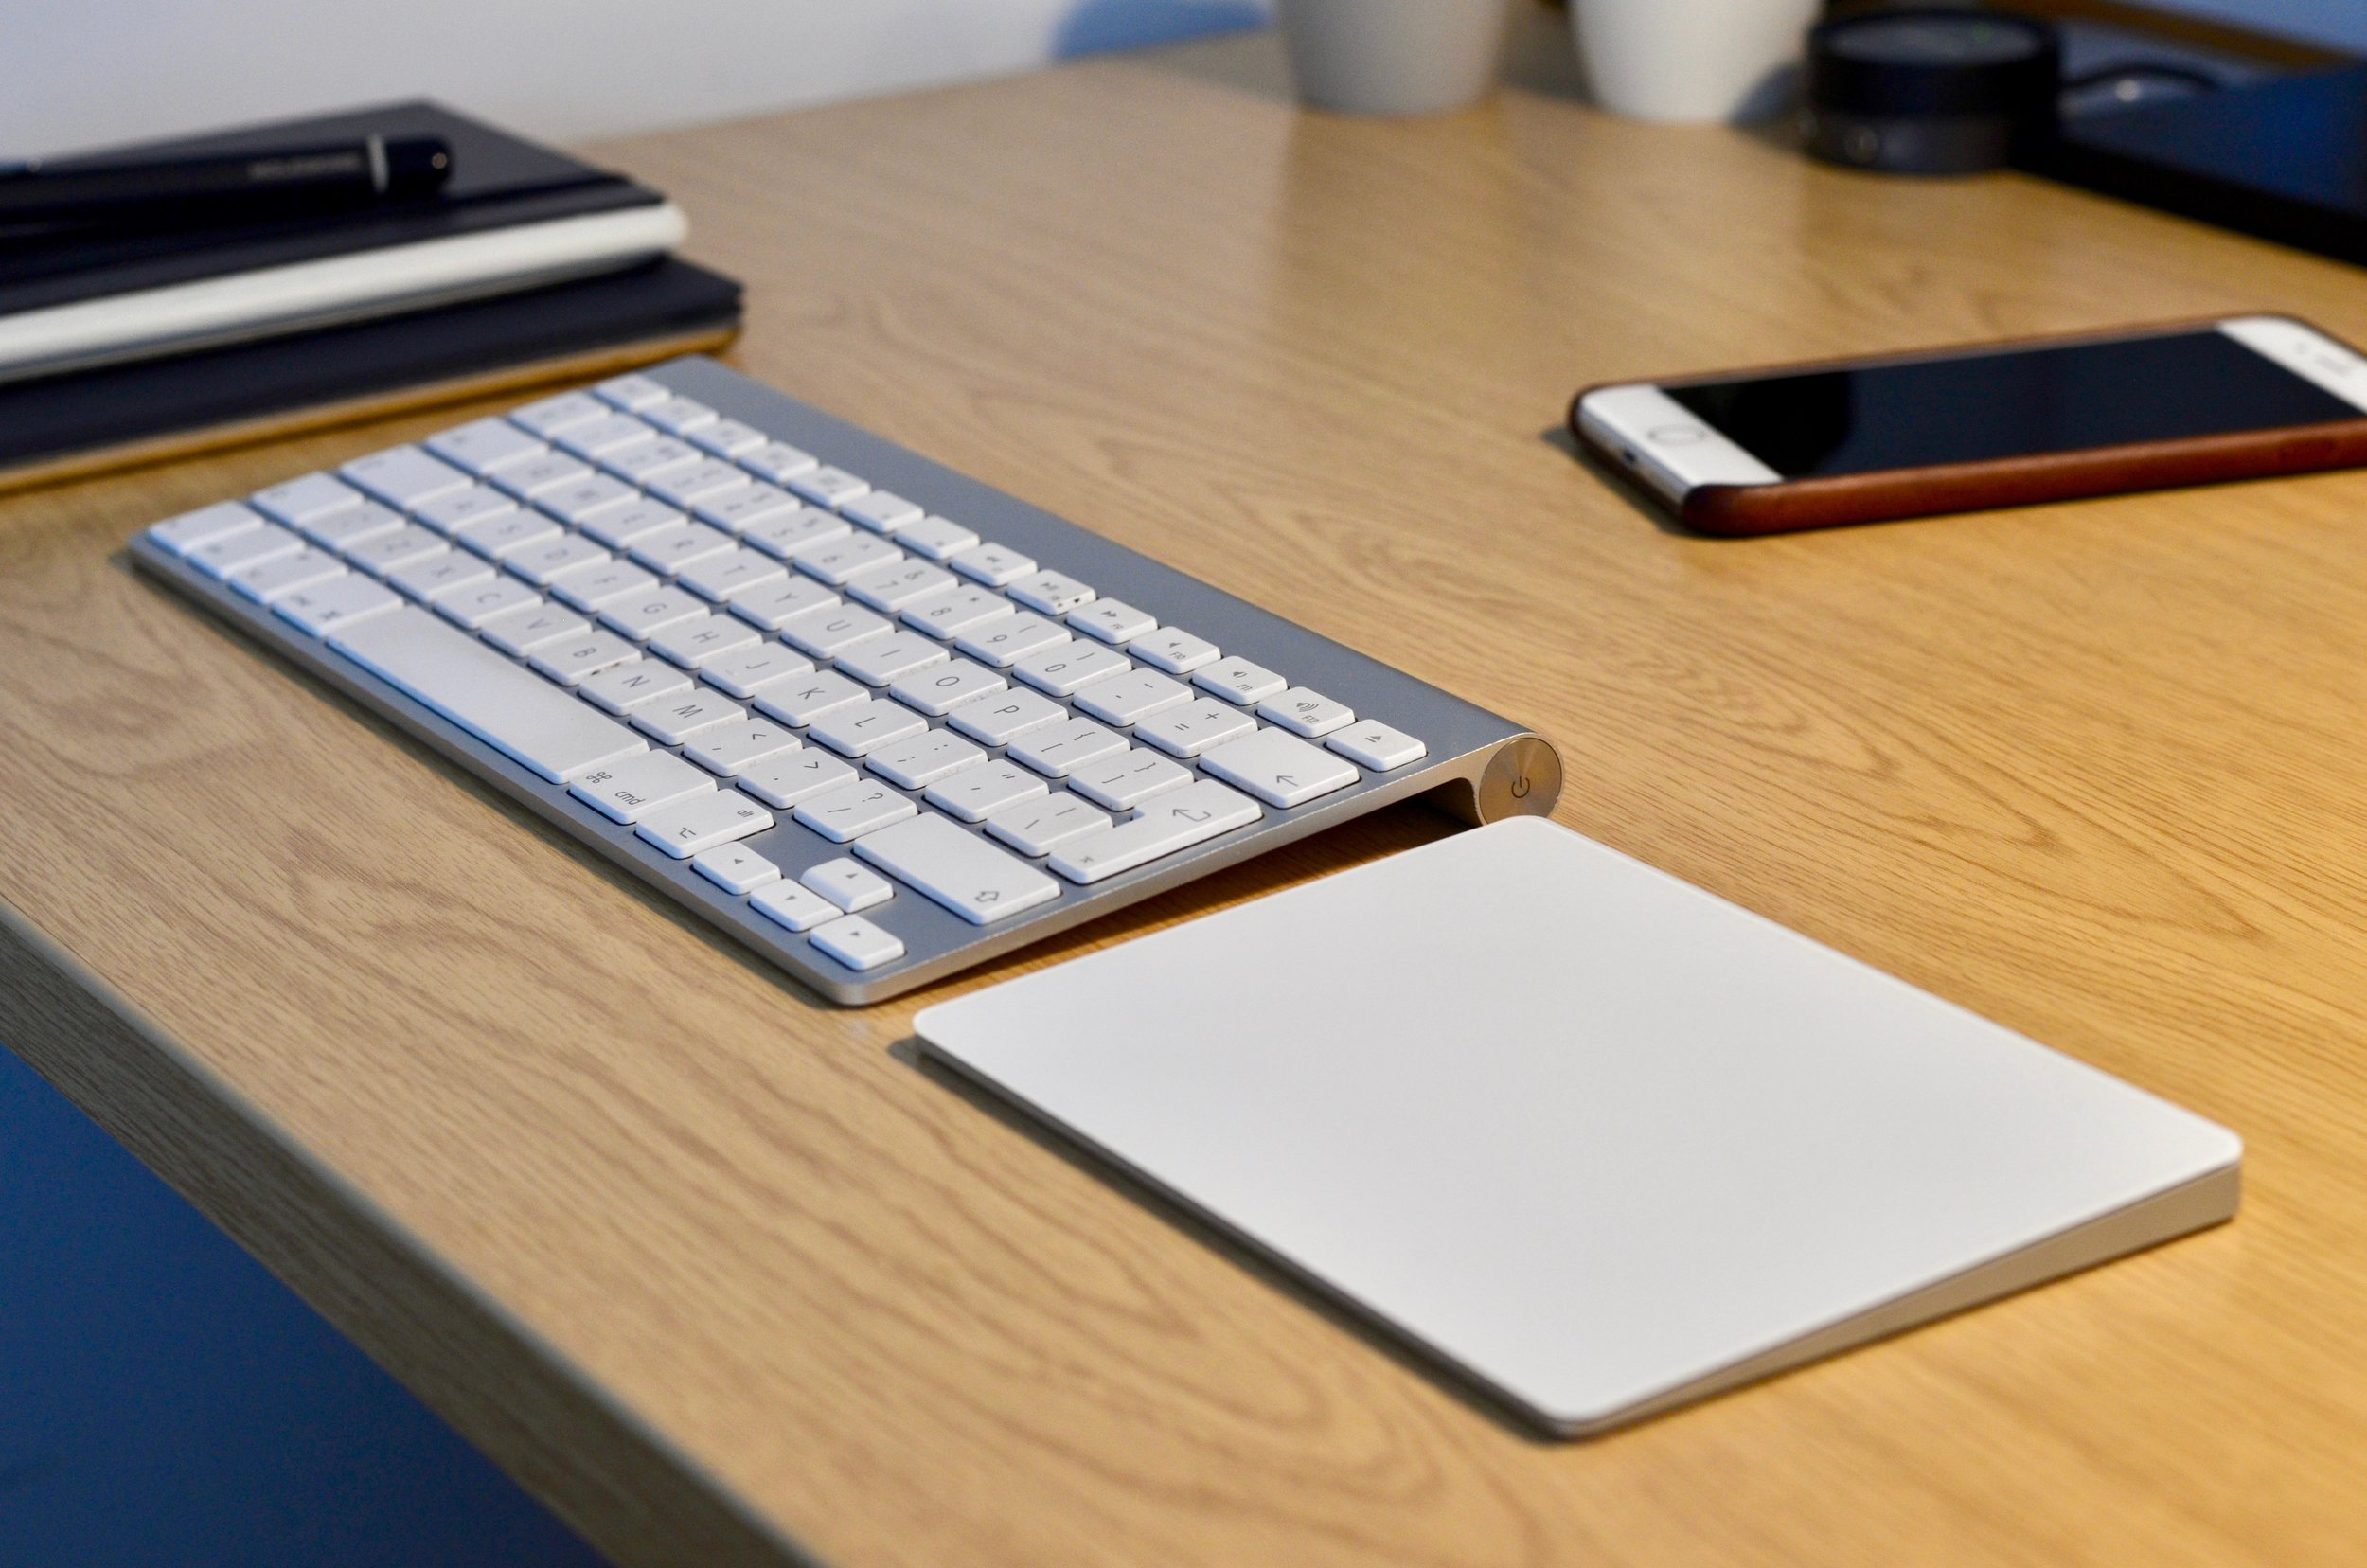 Apple's Magic Trackpad is my preferred option over a conventional mouse